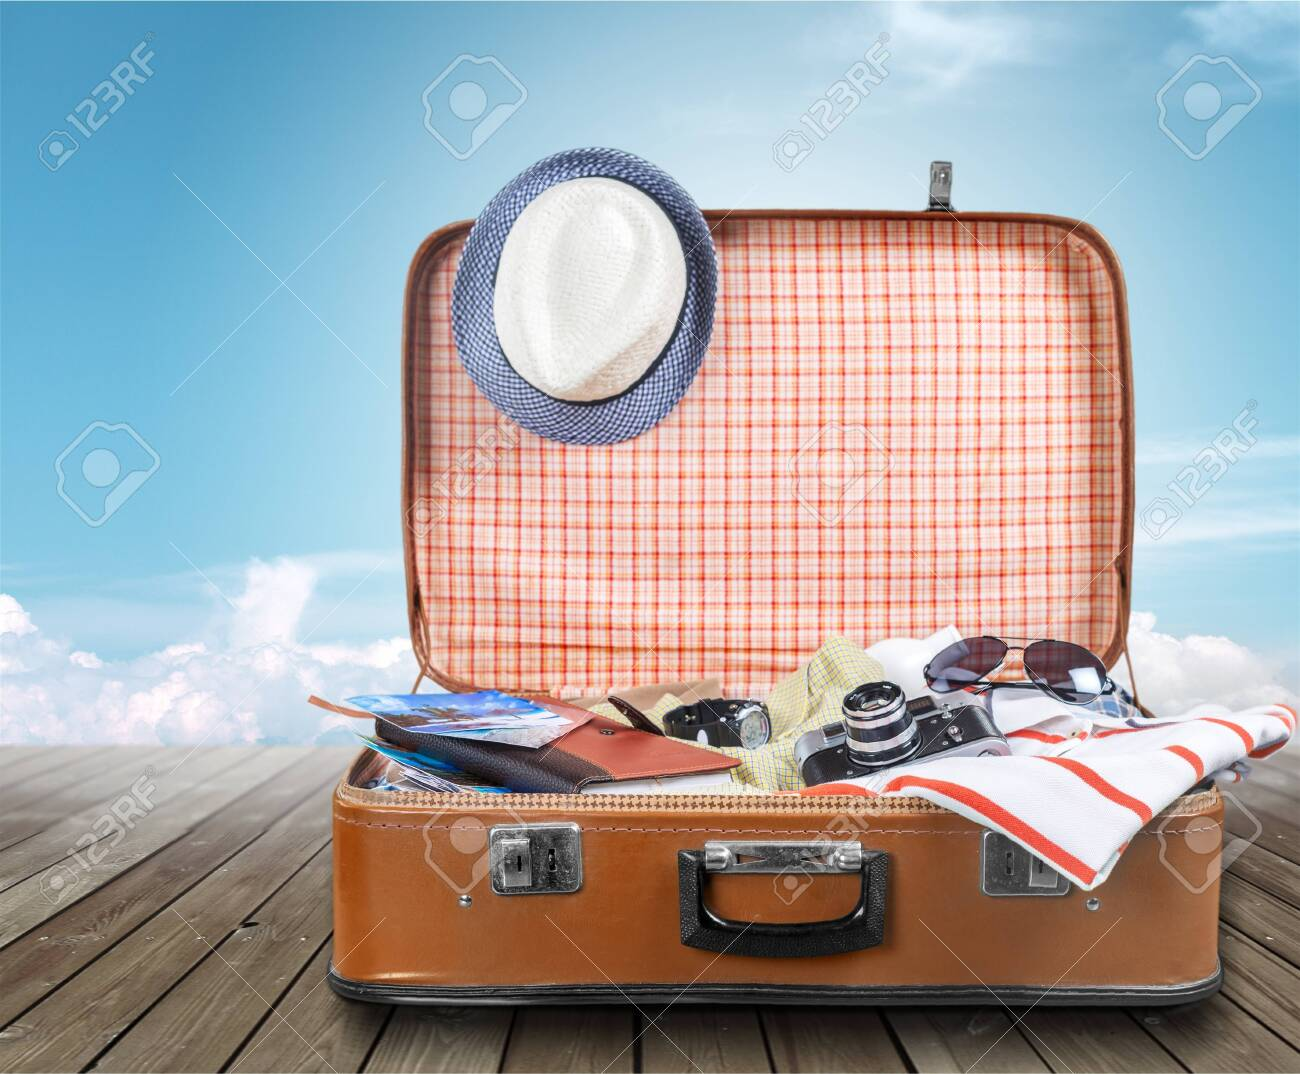 Suitcase with clothes and other travel accessories - 131983523